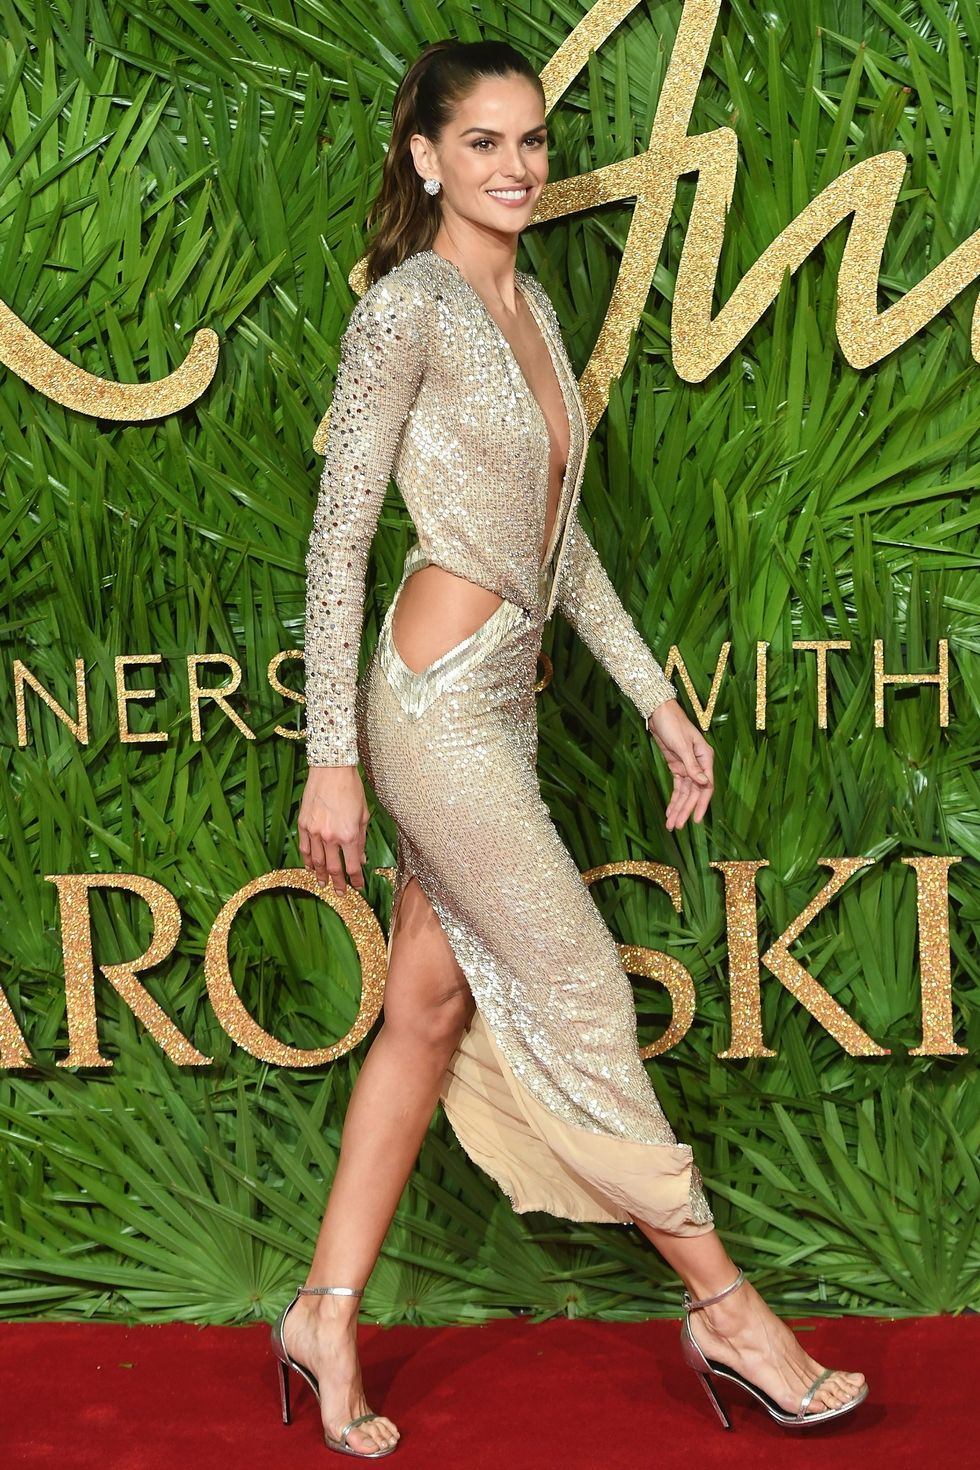 Izabel Goulart - The model was wearing a golden Julien Macdonald dress.Gold is a very trendy colour this season. It represents love, courage, magic and wisdom.